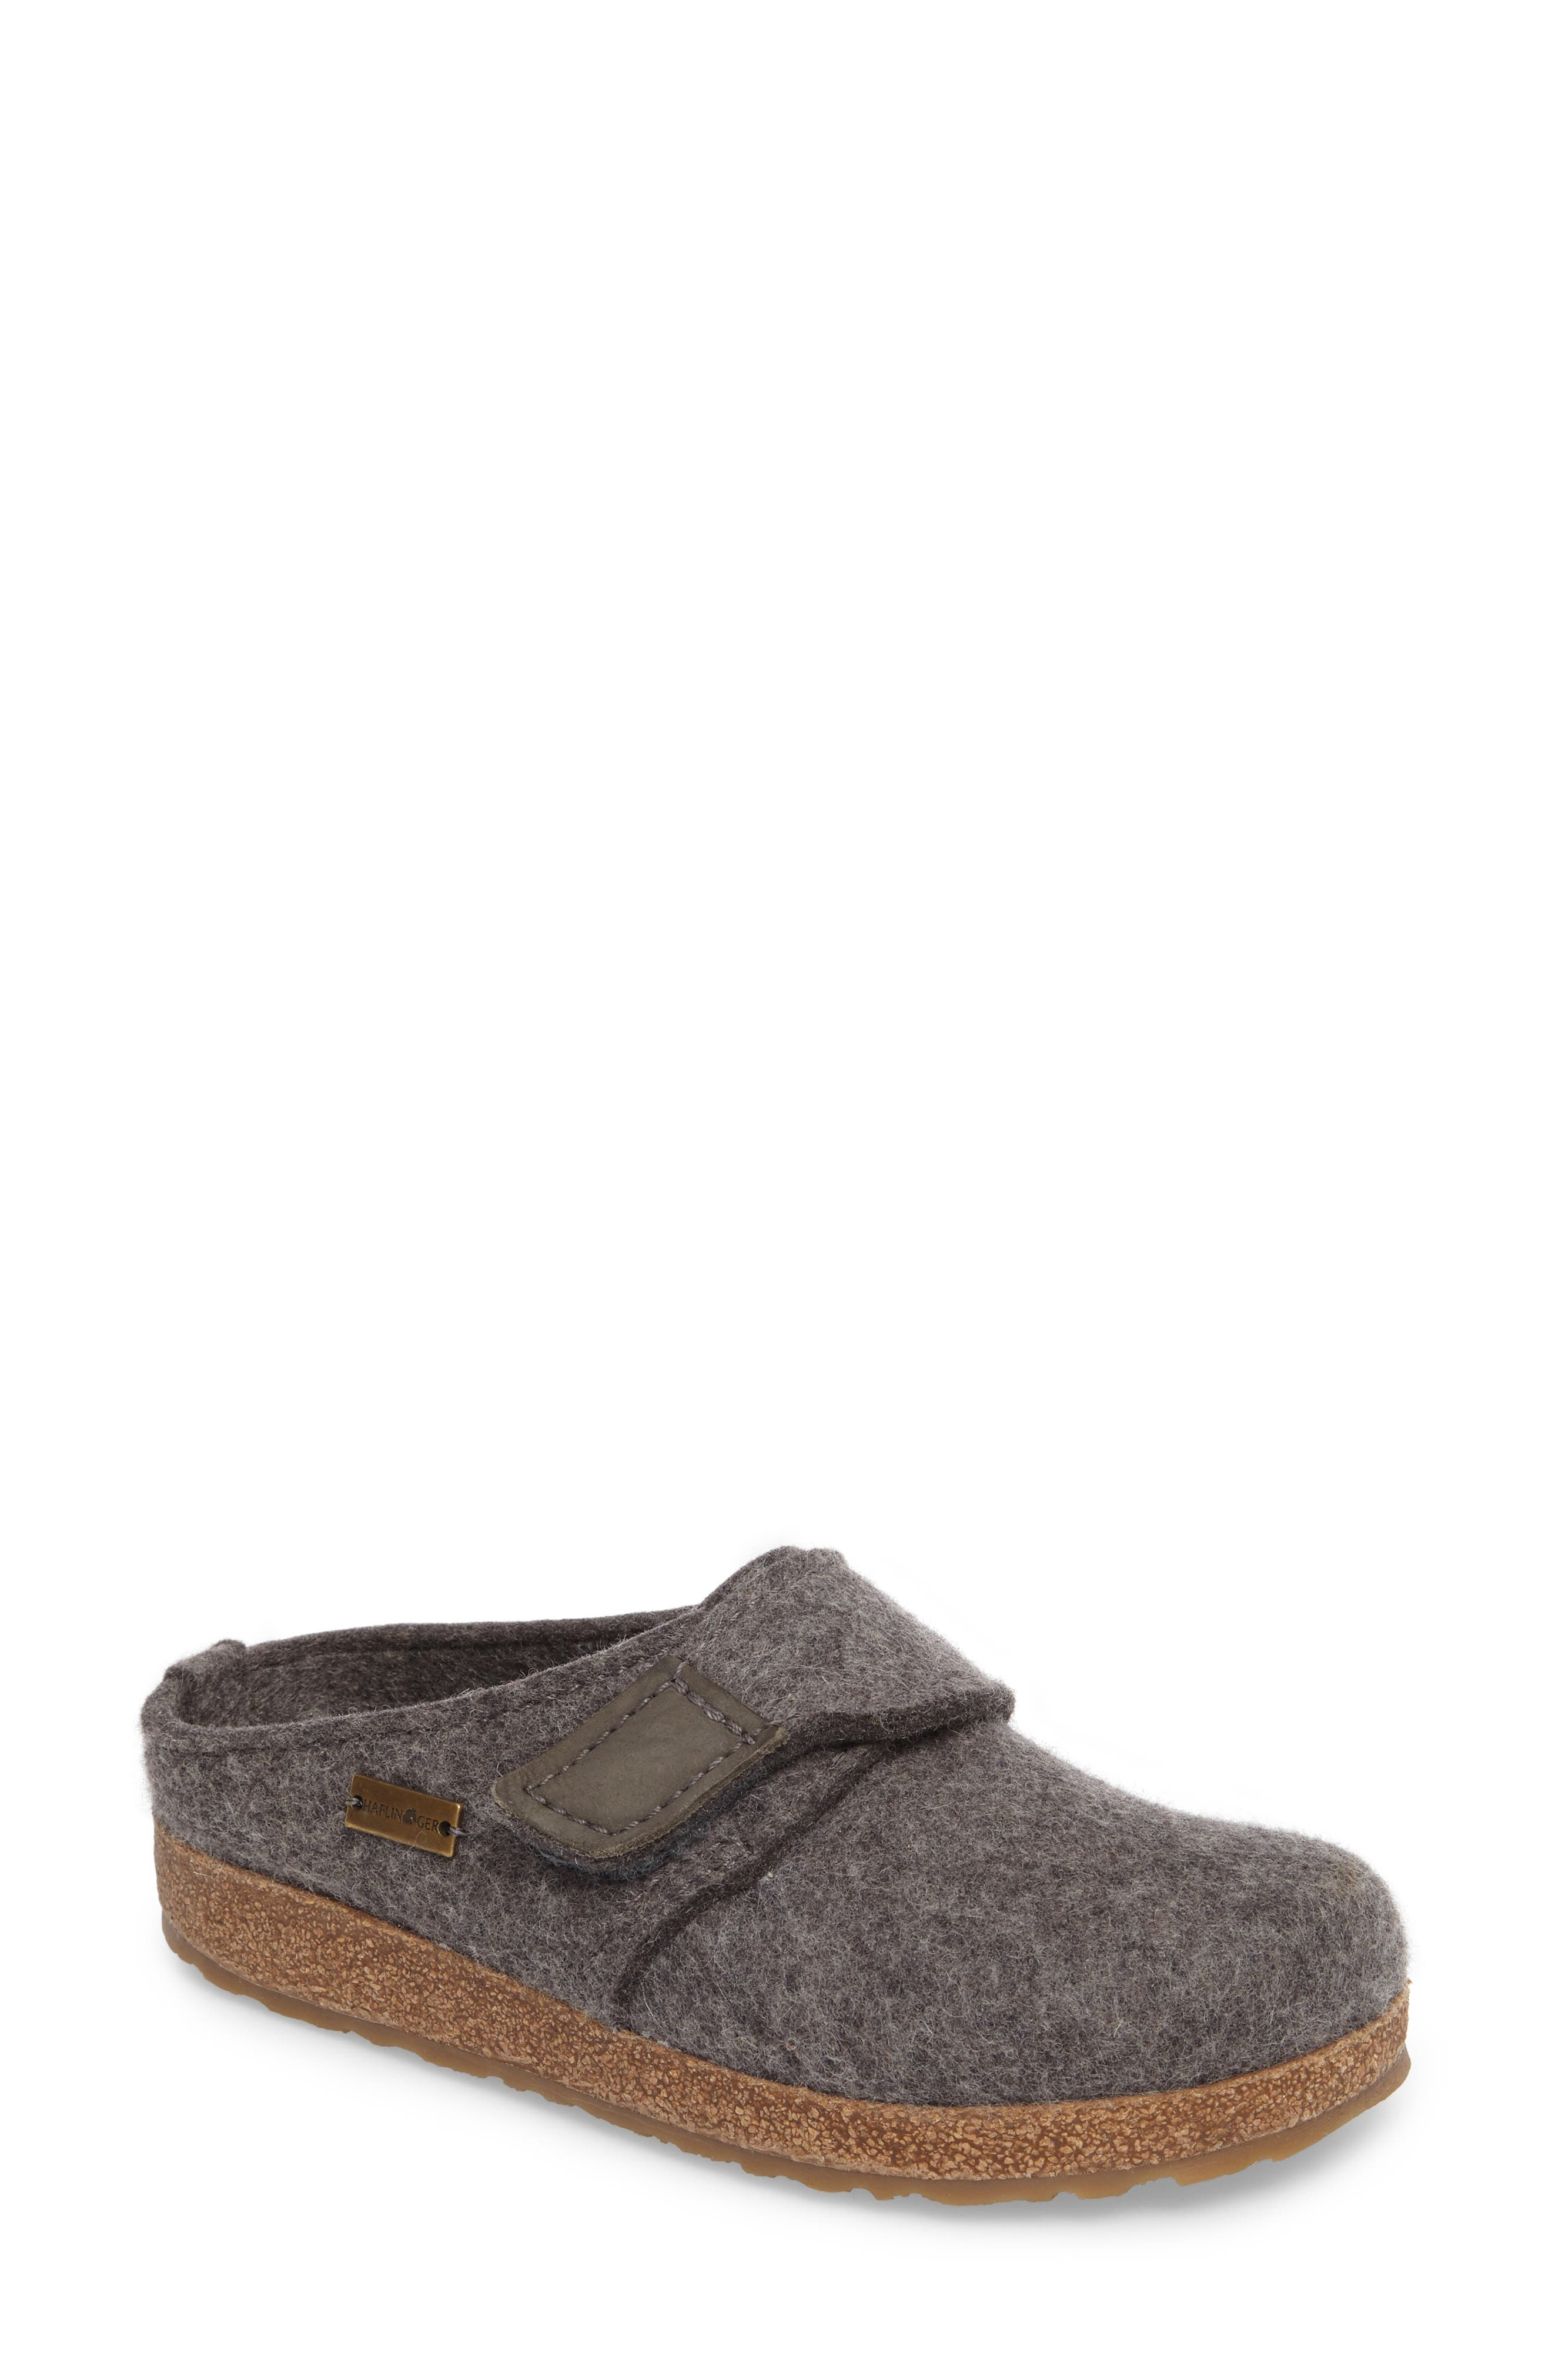 Grizzly Journey Clog Slipper,                             Main thumbnail 1, color,                             020